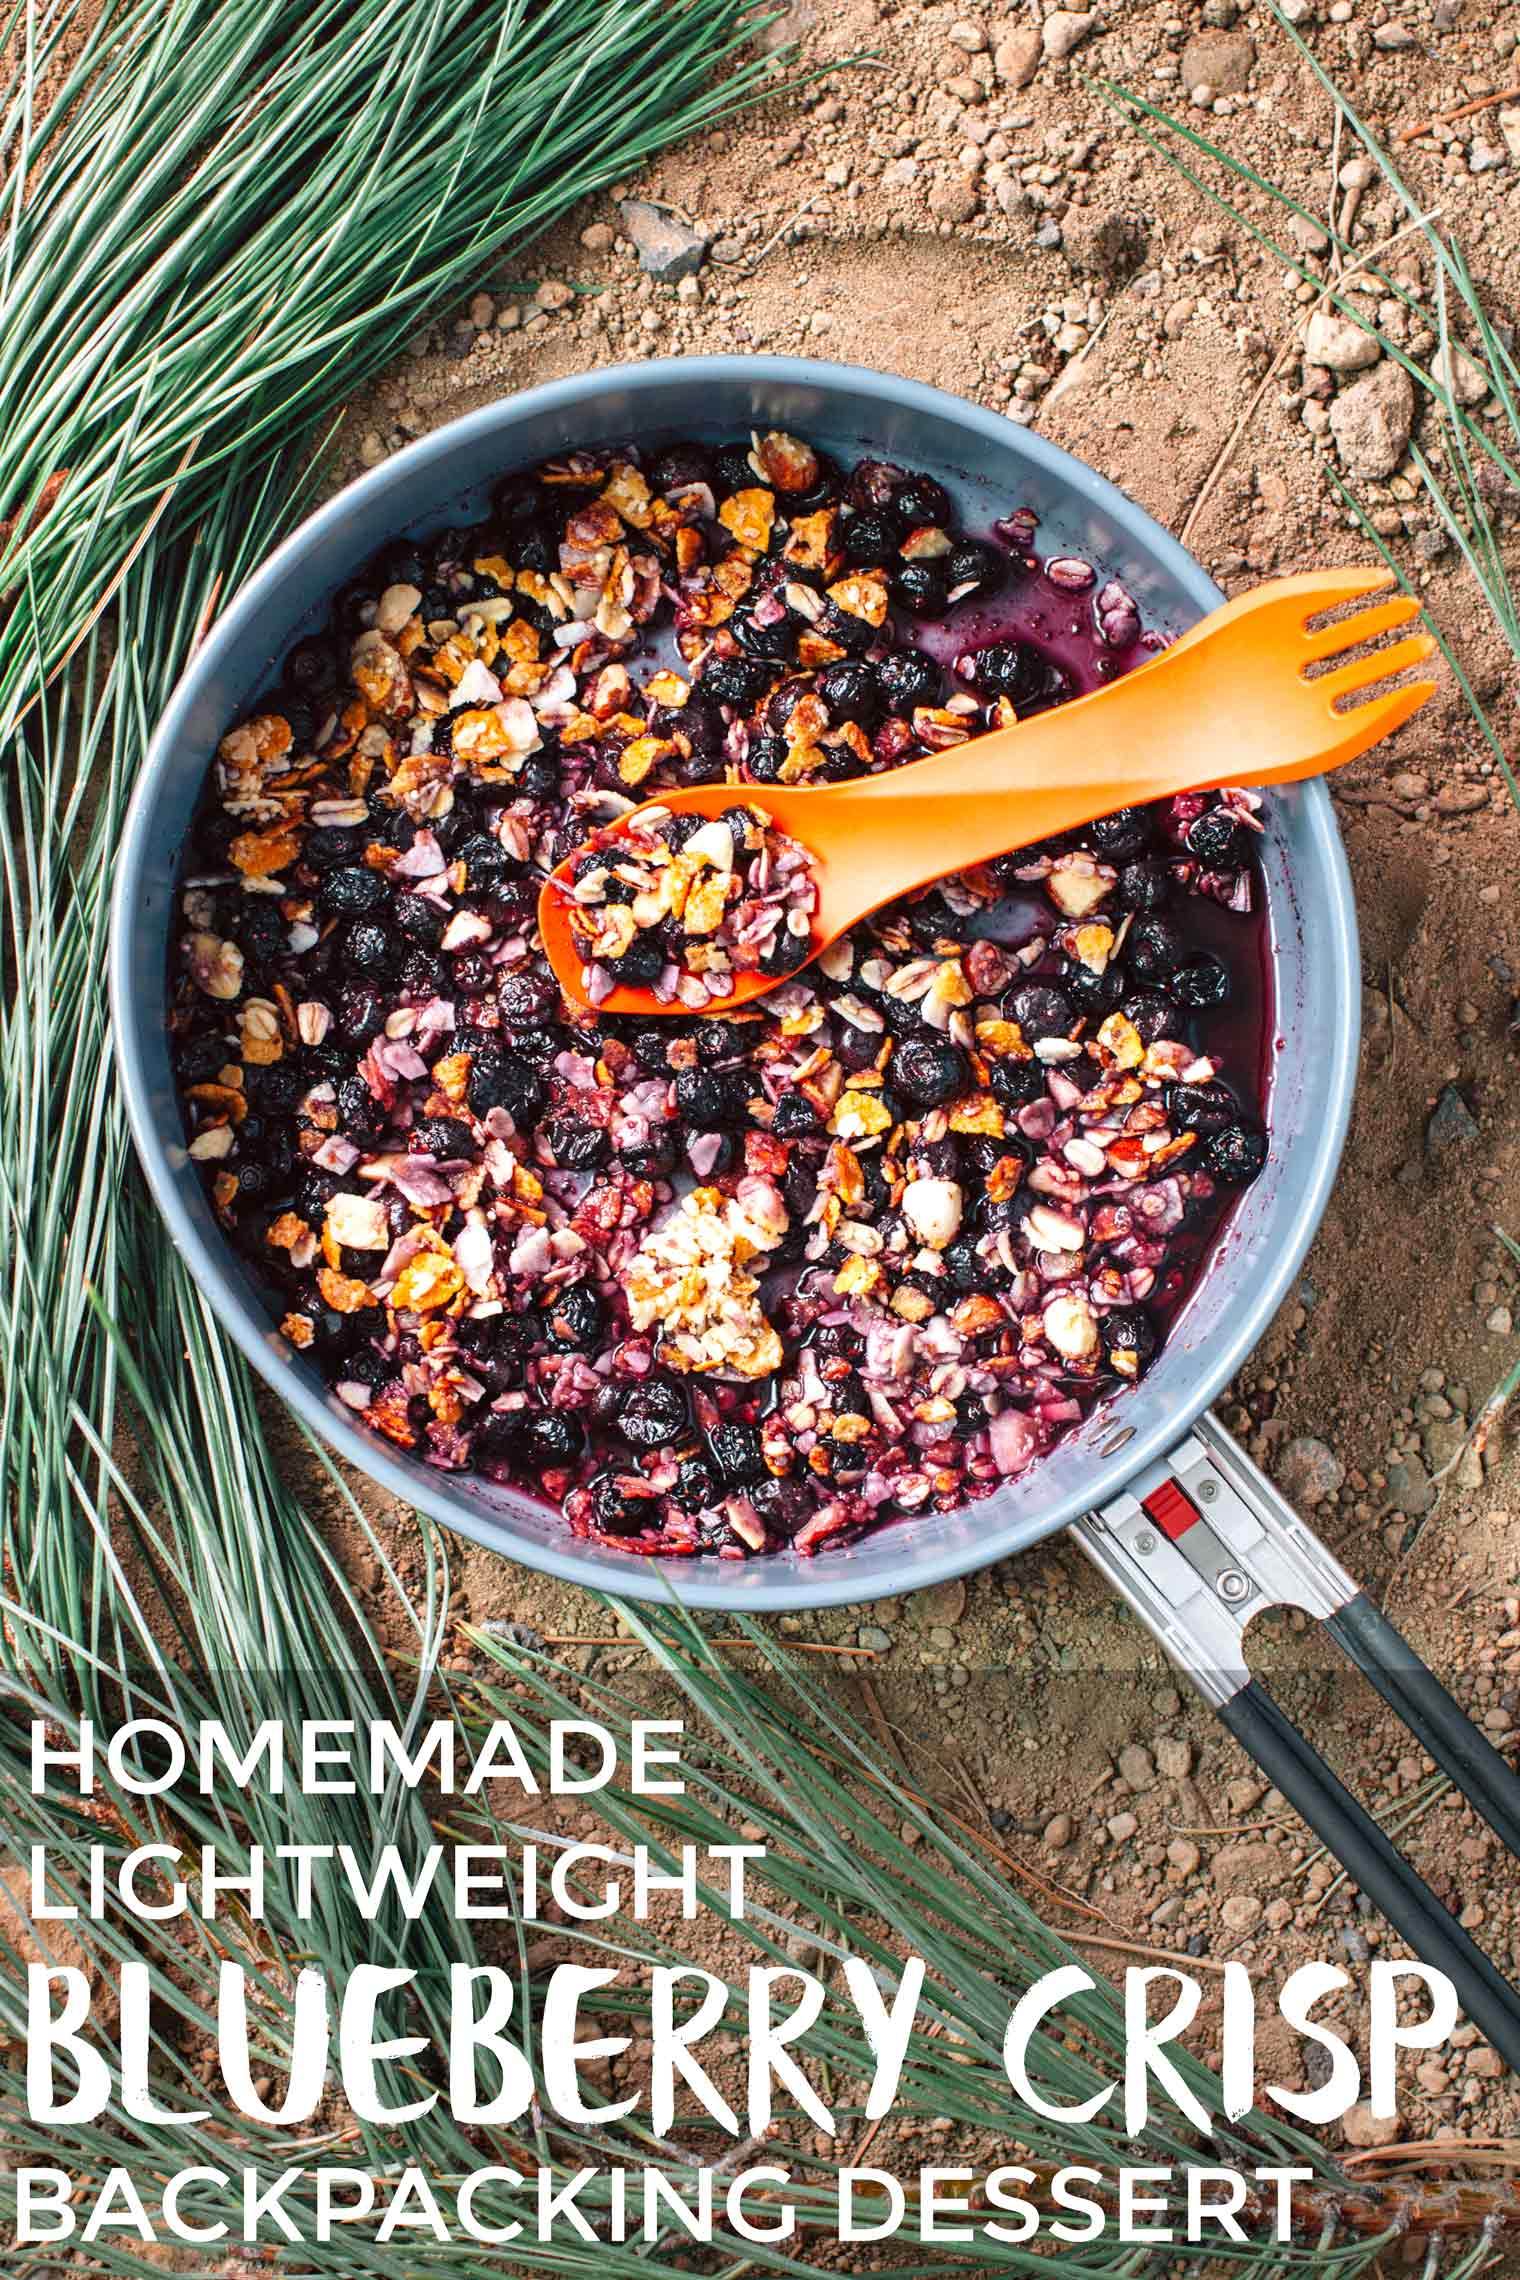 This DIY lightweight backpacking dessert will satisfy your sweet tooth on the trail. Get the recipe for this Backpacker's Blueberry Crisp here!